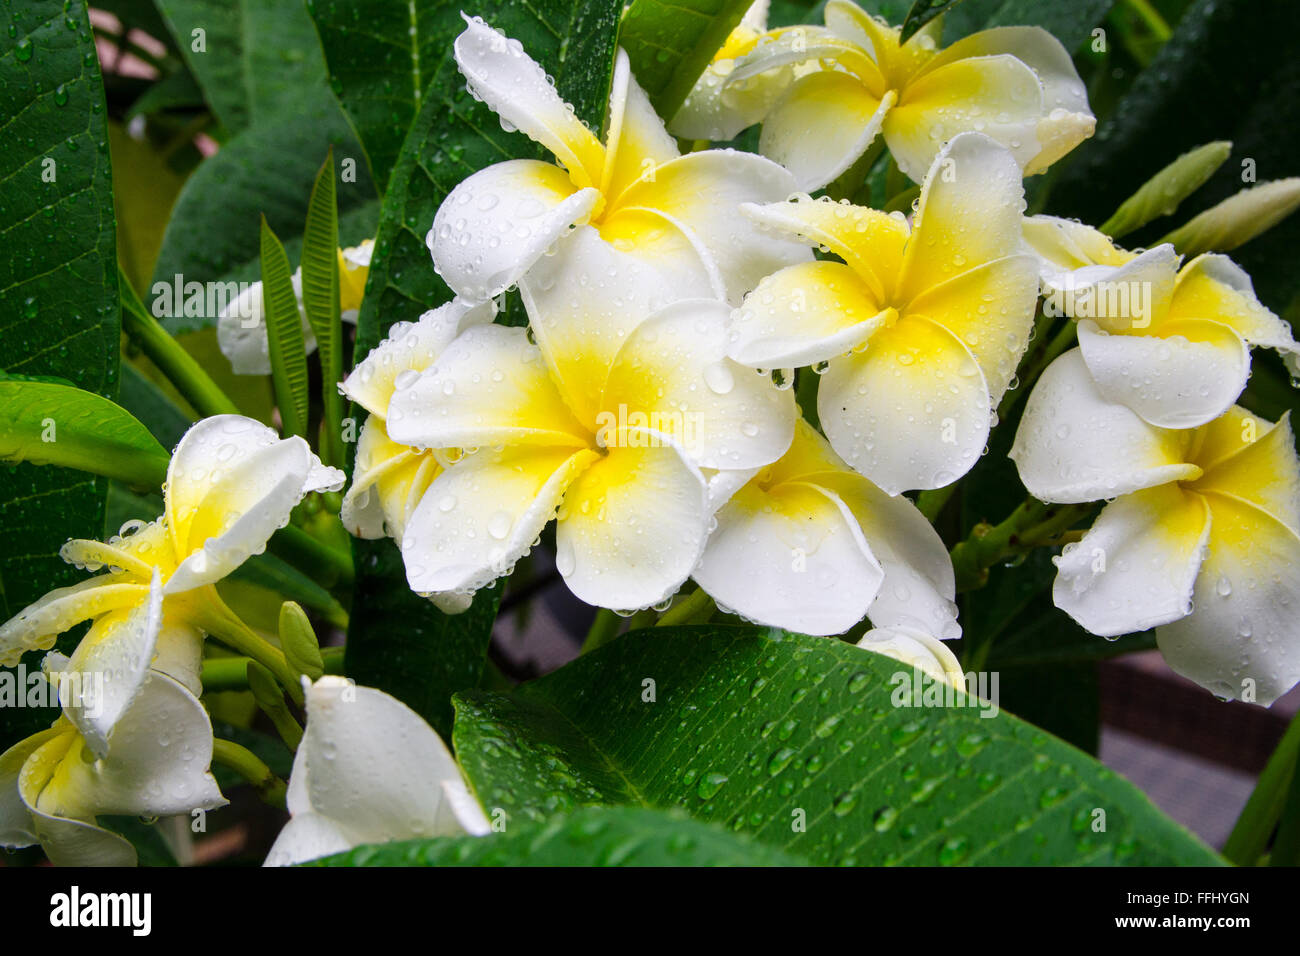 Frangipani Or Plumeria Flower In Drops Of Water After Rain Stock